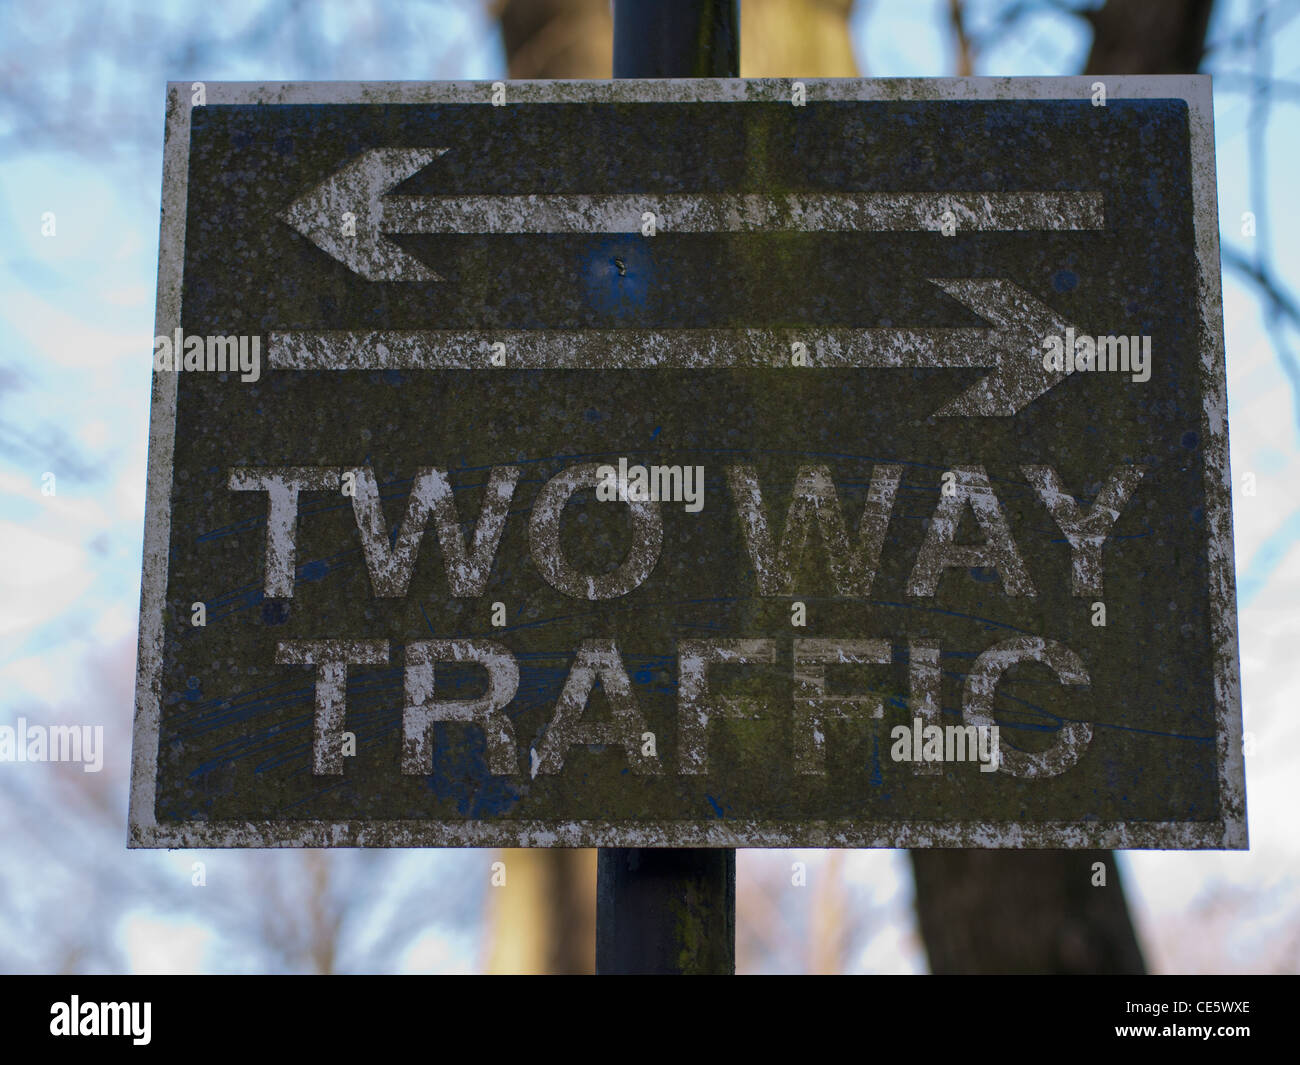 Two Way Traffic sign, decrepit Stock Photo